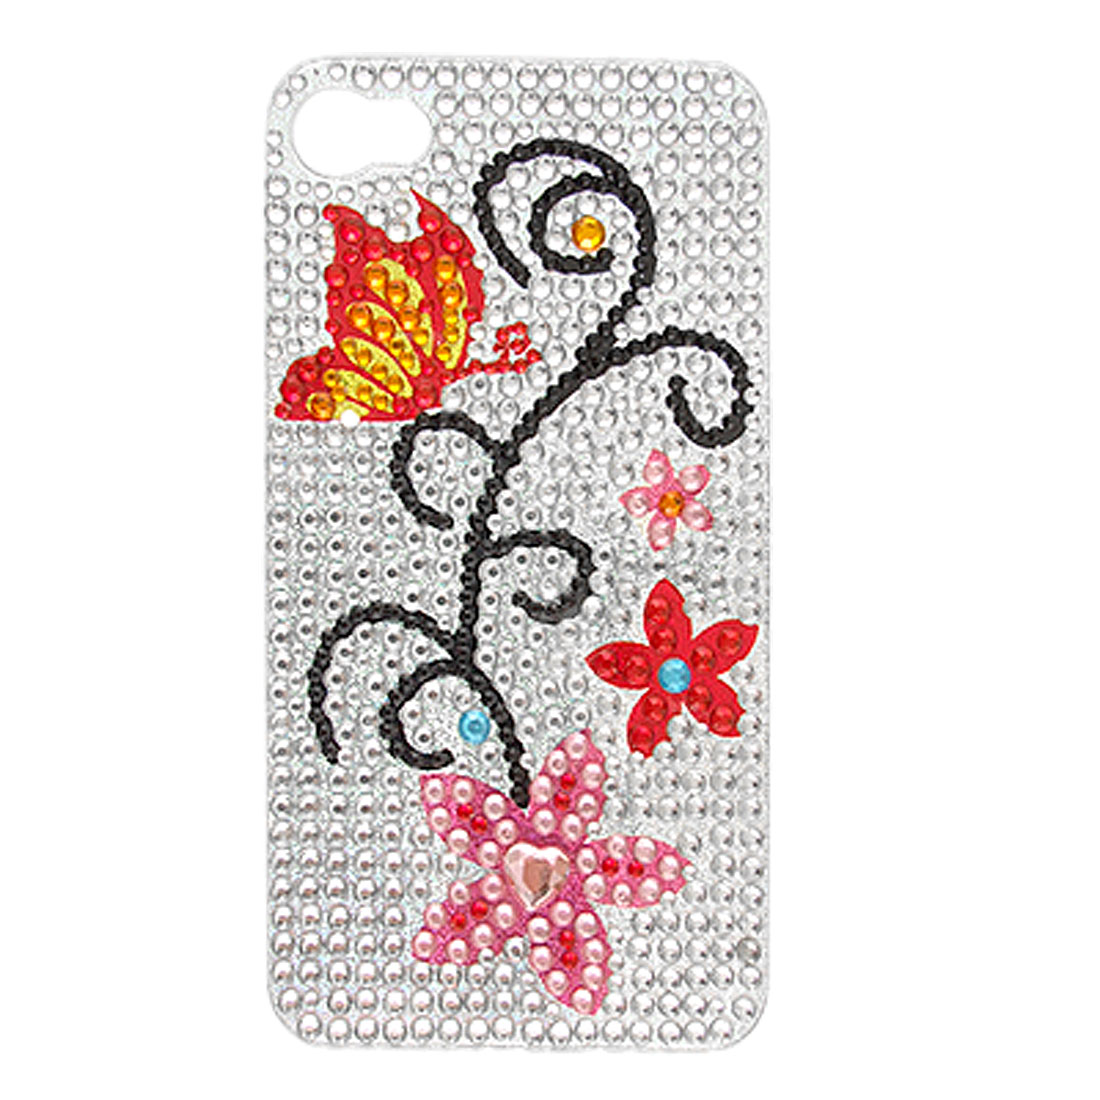 Flower Detail Glitter Crystal Self Adhesive Back Sticker for iPhone 4